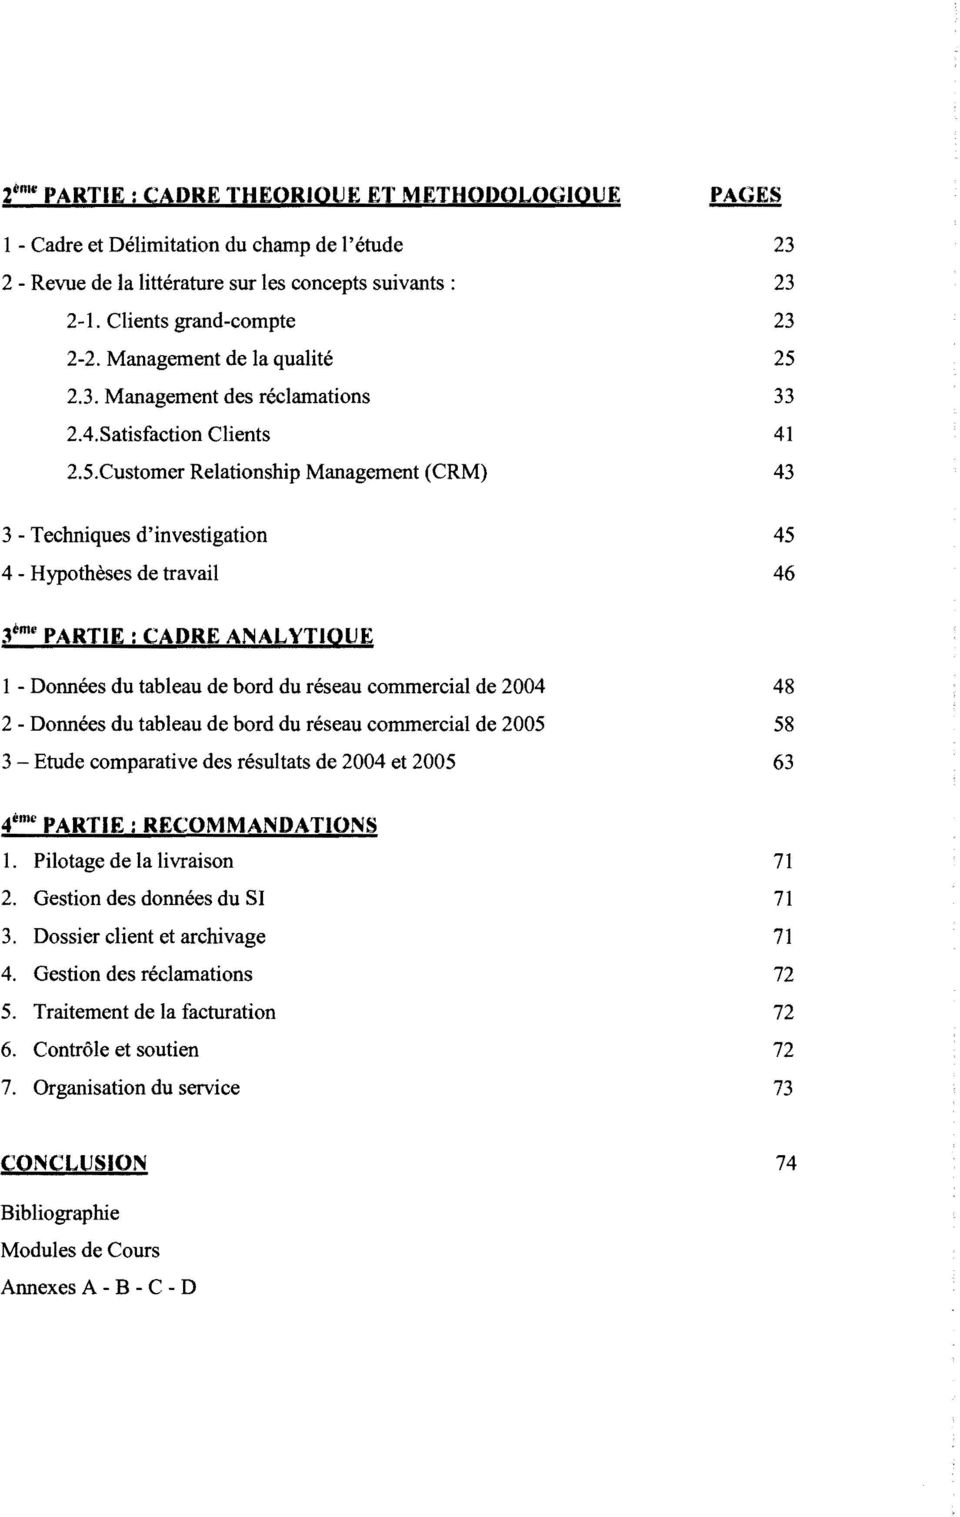 Customer Relationship Management (CRM) PAGES 23 23 23 25 33 41 43 3- Techniques d'investigation 4 - Hypothèses de travail 45 46 3ème PARTIE: CADRE ANALYTIQUE 1 - Données du tableau de bord du réseau